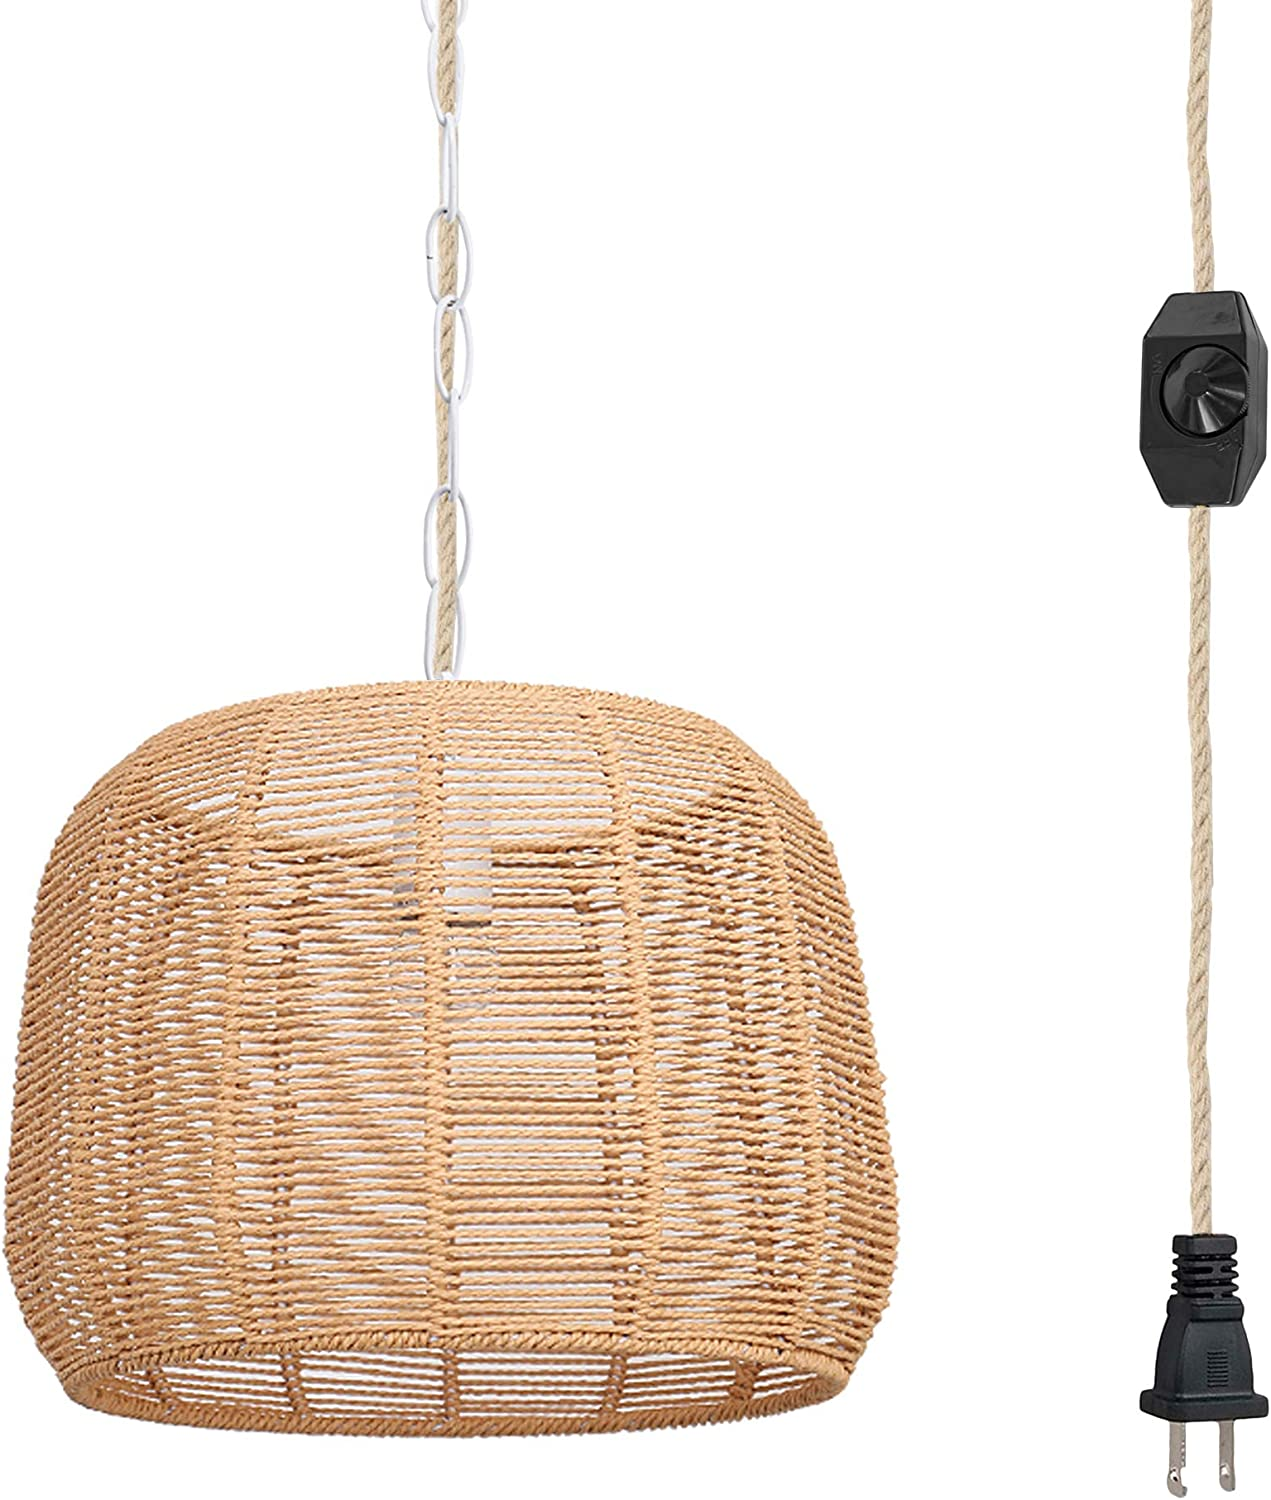 Hanging Swag Ceiling Lamp Twine Natural Rattan Lampshade No Wiring Needed Portable Pendant Light with 20ft Plug-in Iron Chain Rope Cord Dimmable Farmhouse Chandelier Instant on Swag Lamp,Customizable